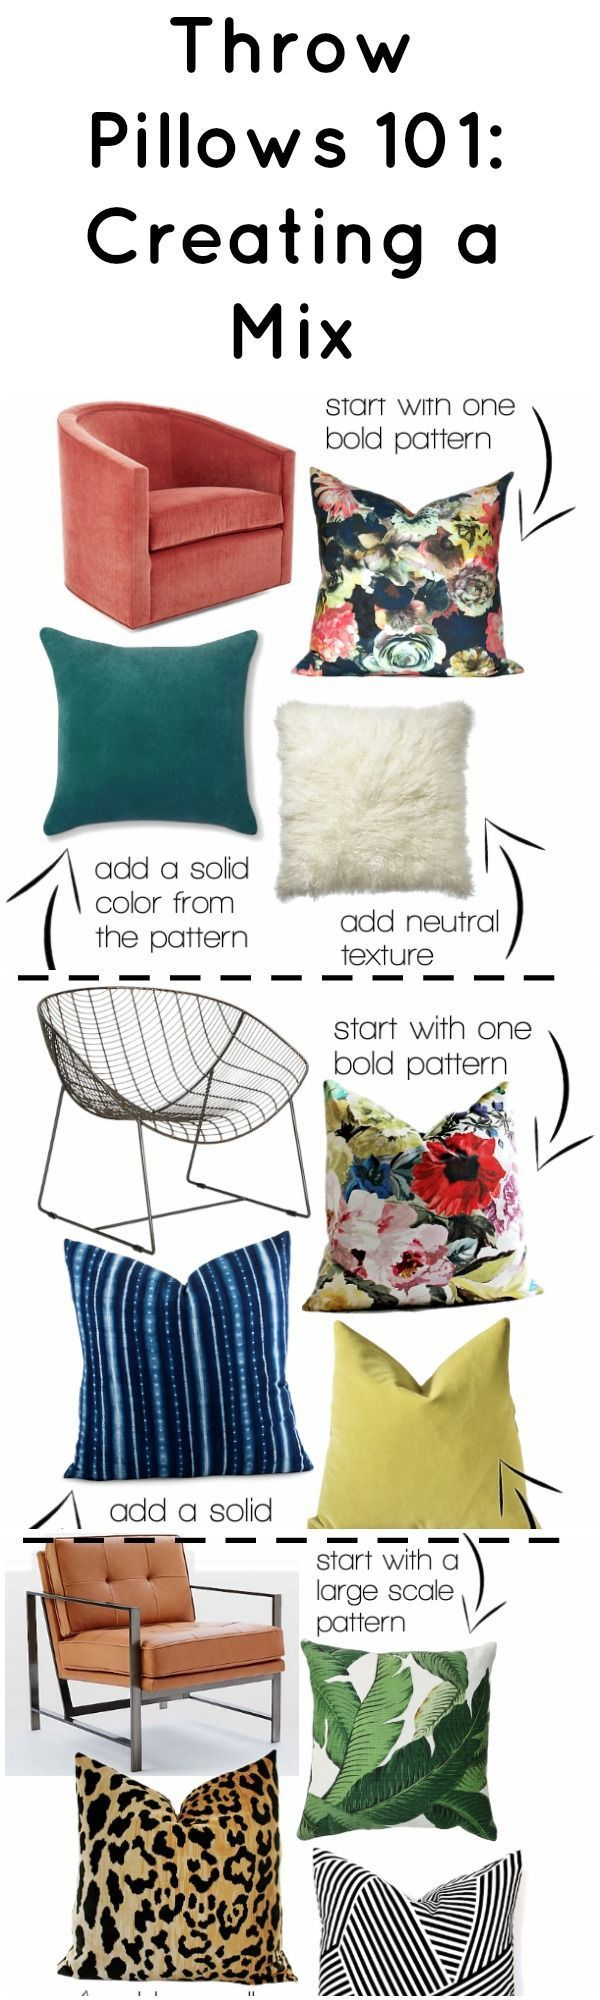 how to create a throw pillow mix 3 levels with examples